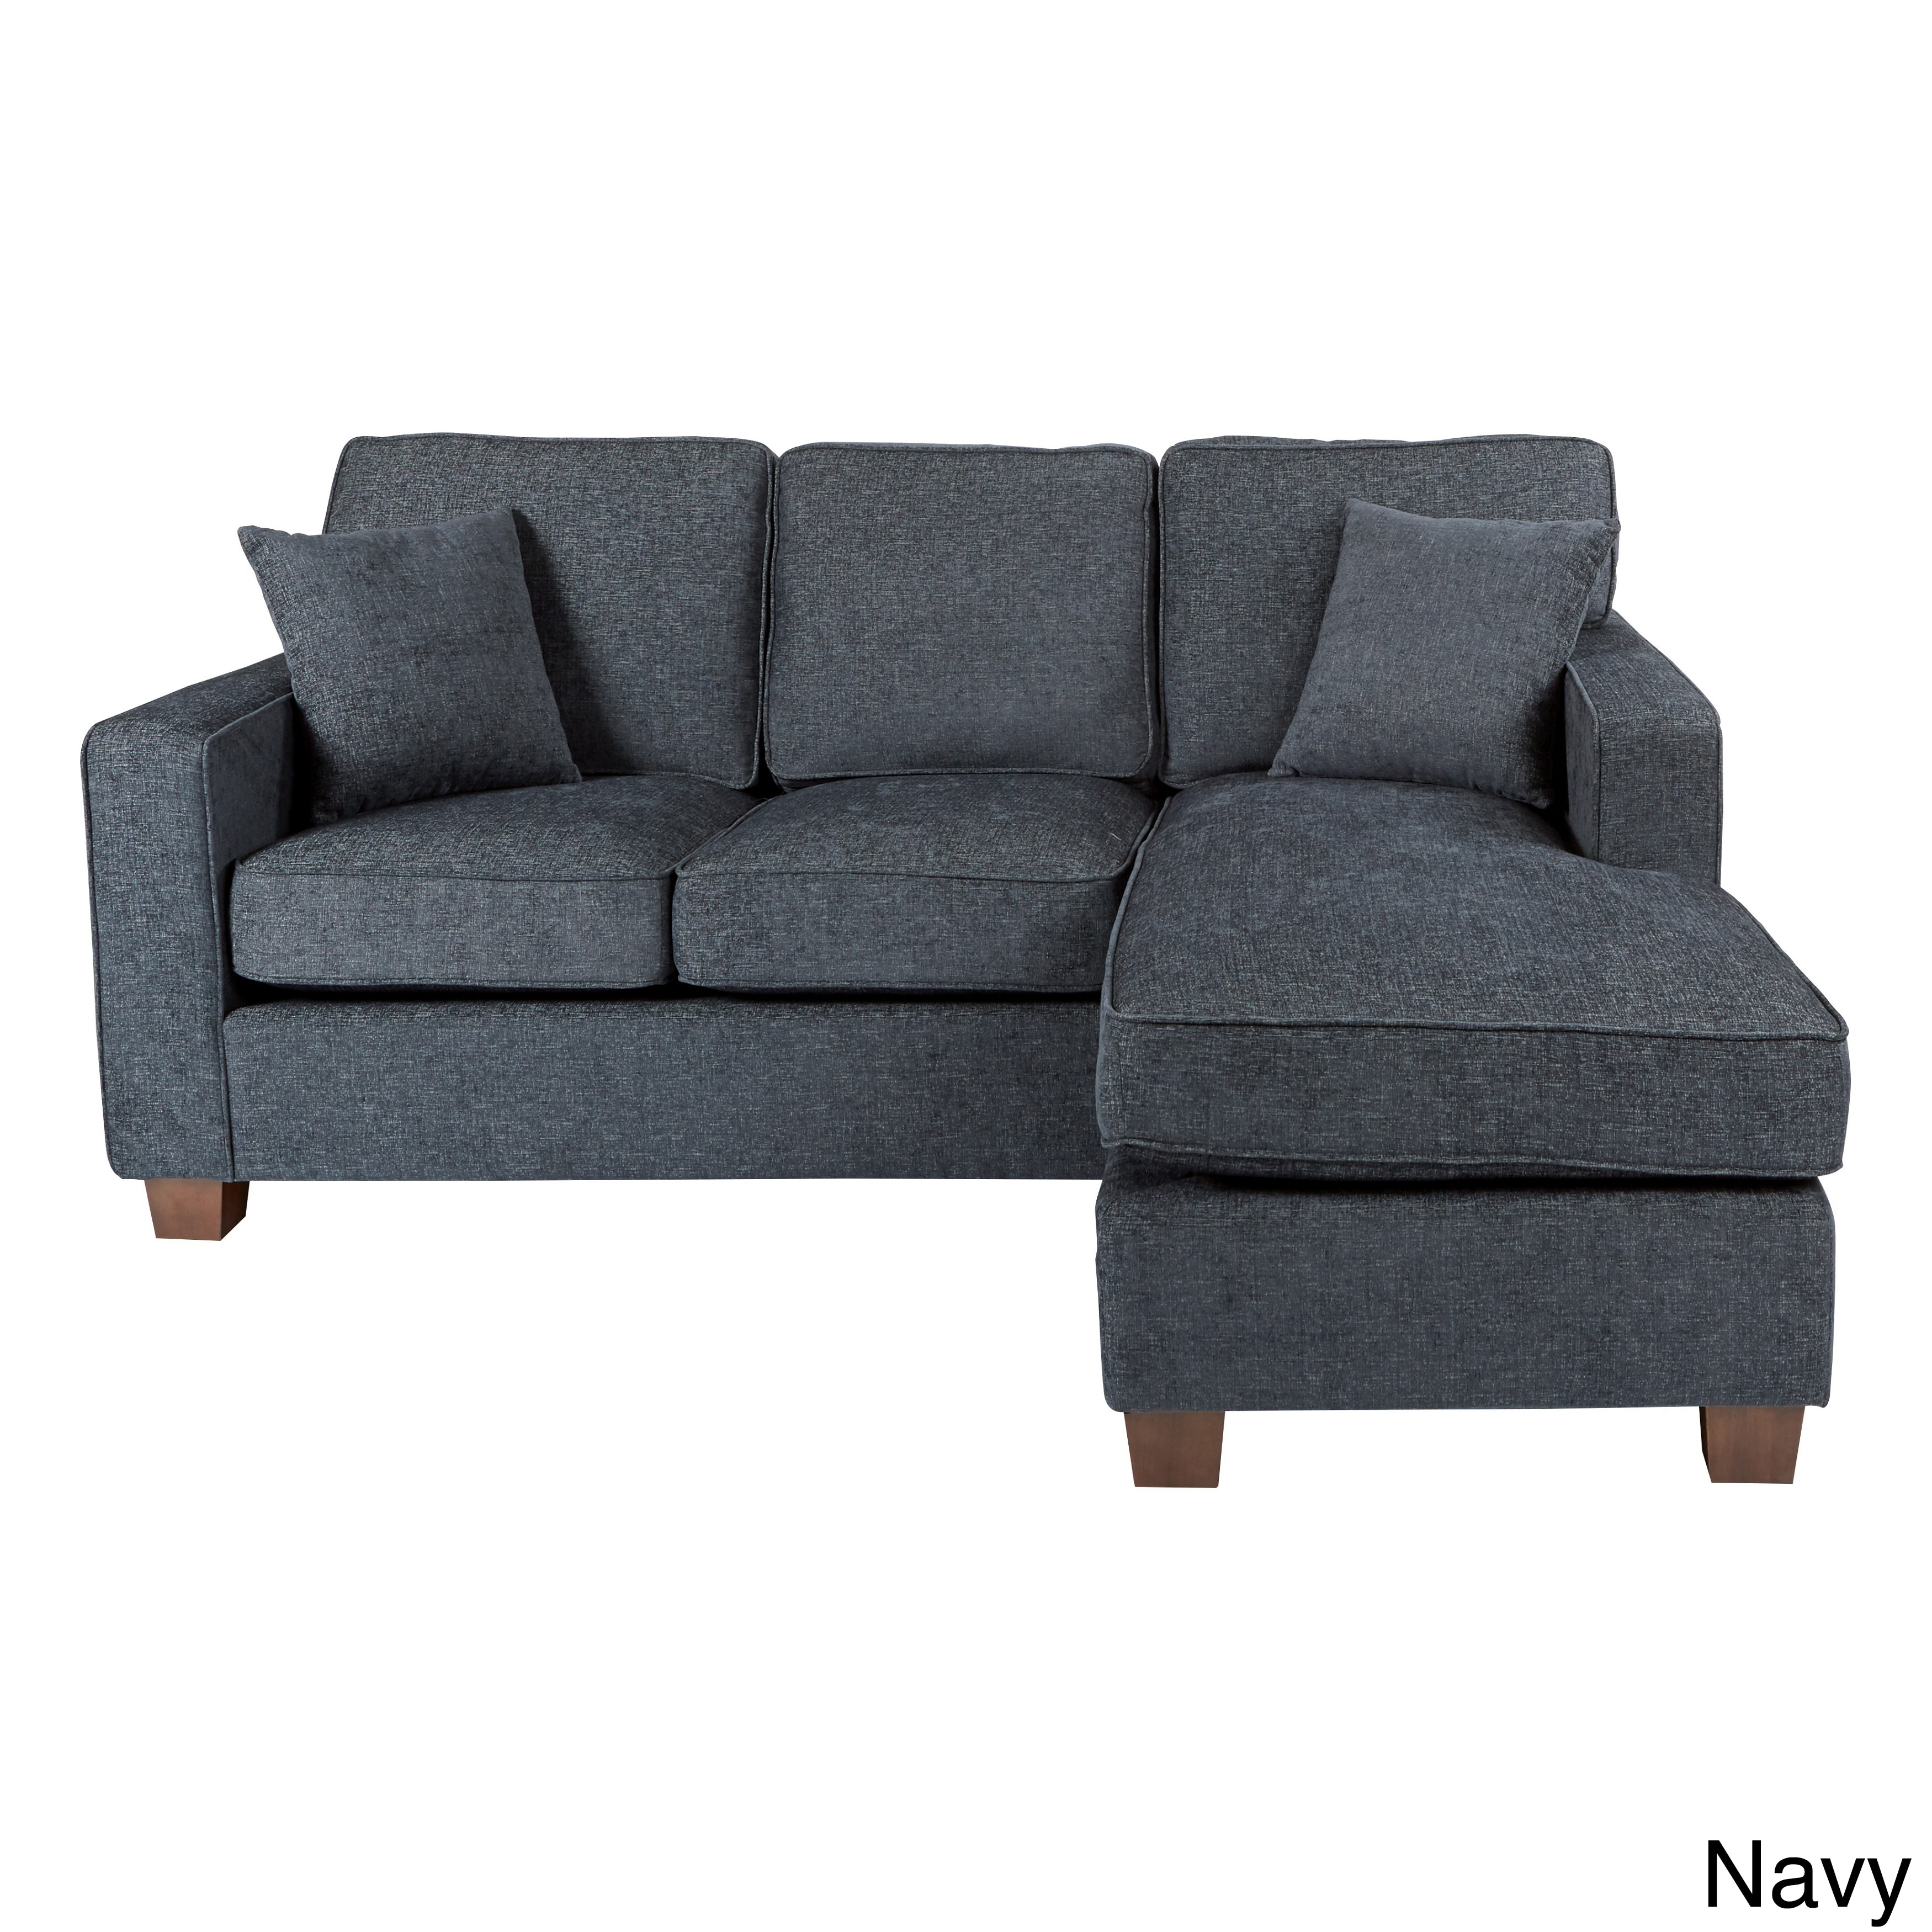 Porch U0026 Den Over The Rhine Renner Reversible Chaise Sectional Sofa (Option: